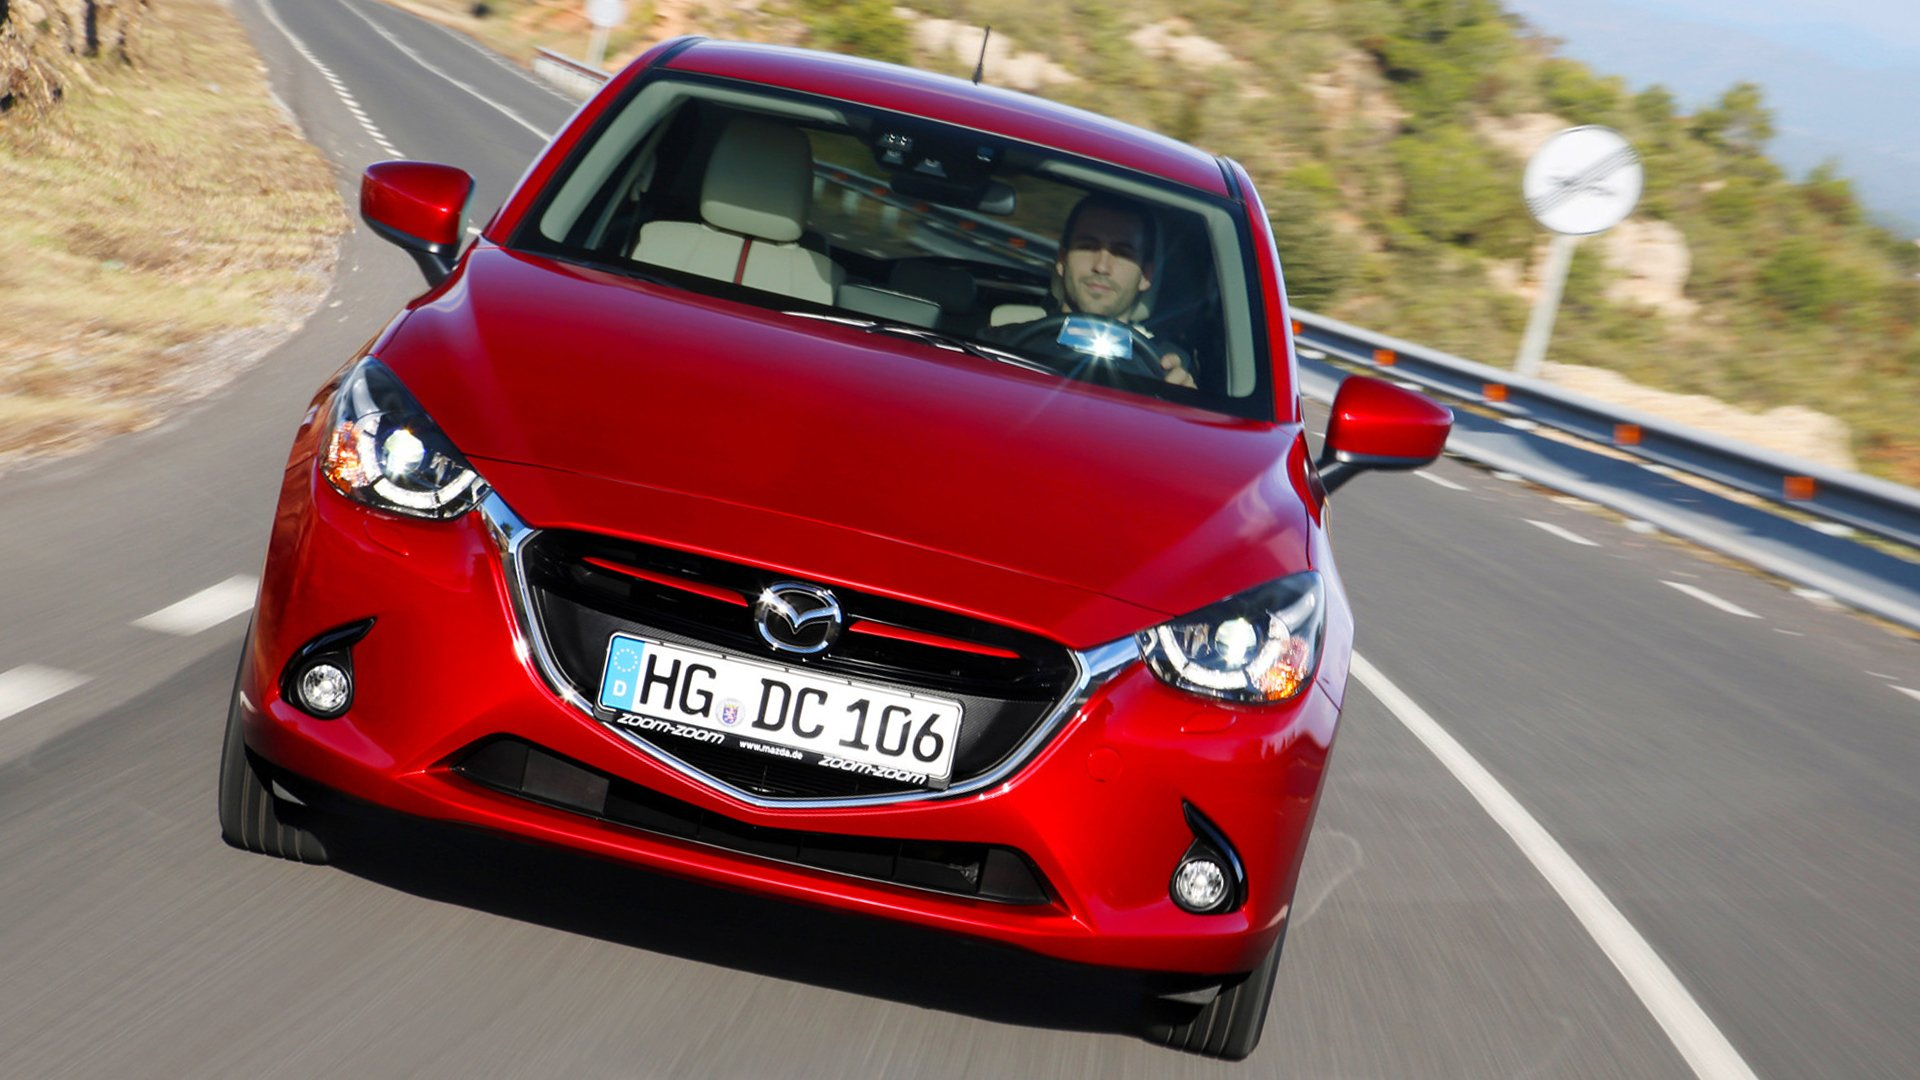 Sedan Cars Models Mazda 2 New HD